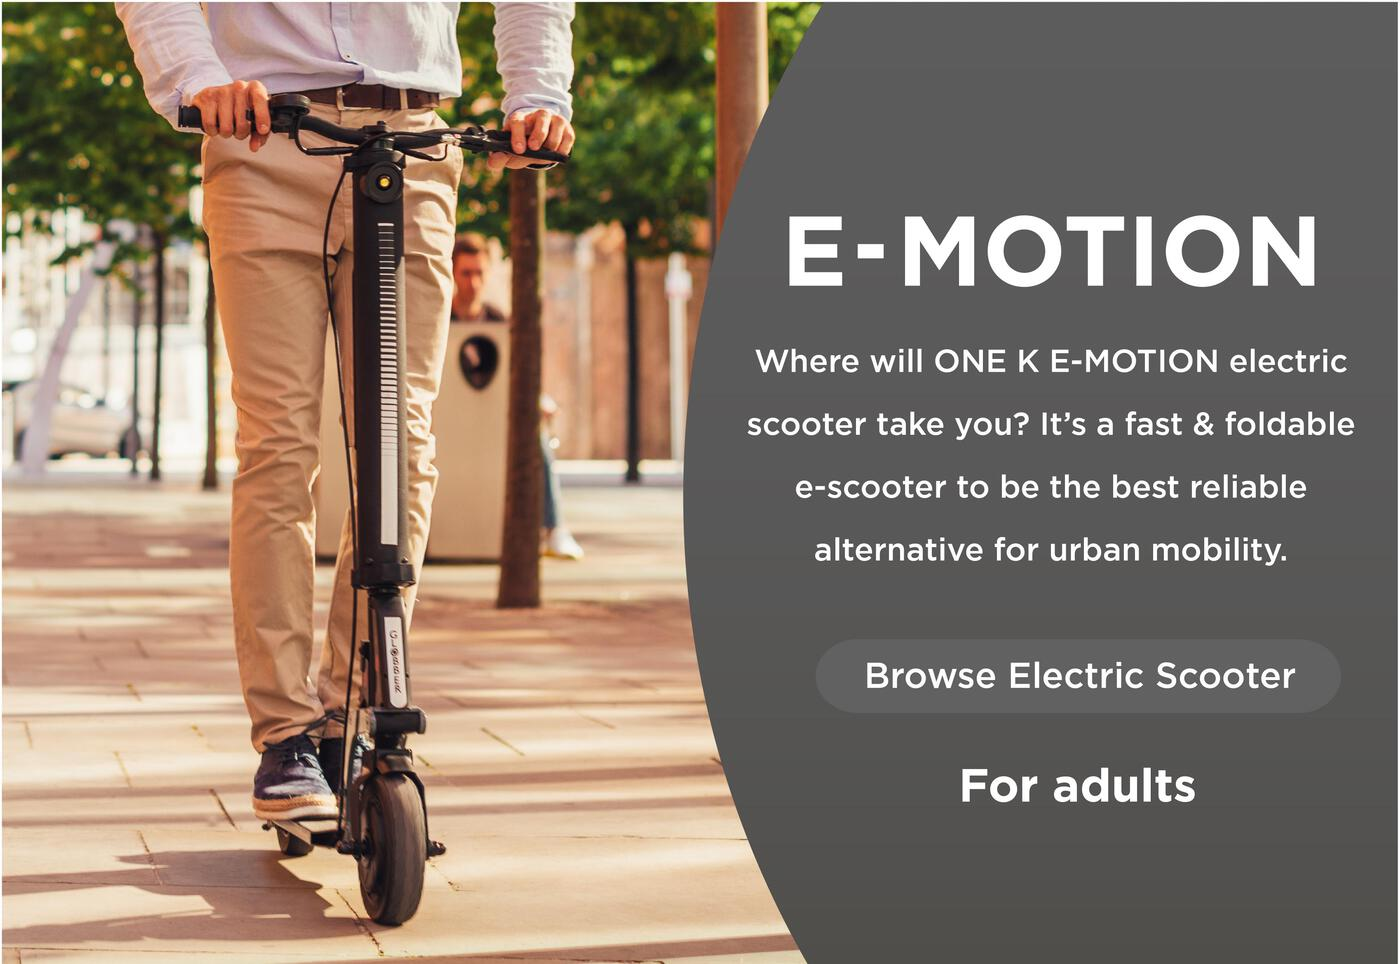 Where will ONE K E-MOTION electric scooter take you? It's a fast & foldable e-scooter to be the best reliable alternative for urban mobility.